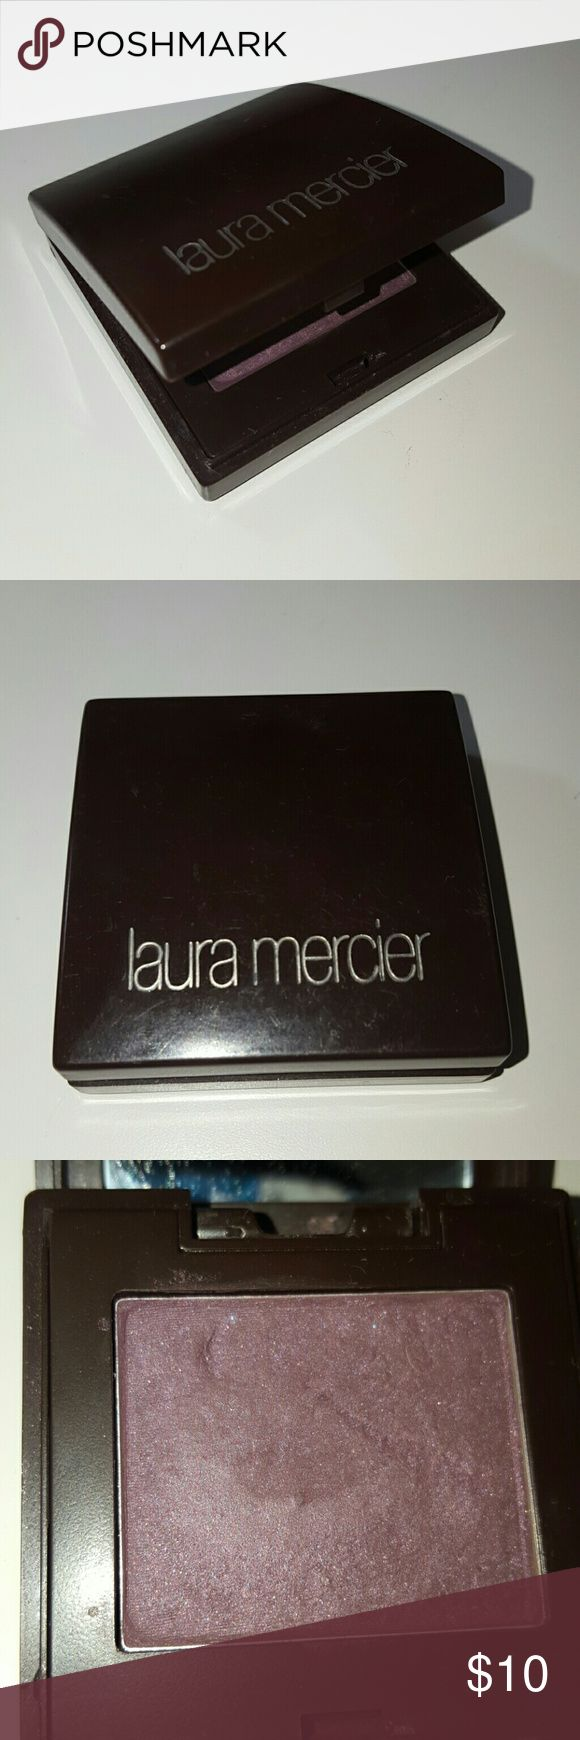 Authentic Laura Mercier eyeshadow Dark purple color. I am not really sure the exact shade since the back is all ugly now. :( Used quite a bit, but still has a ton of life left! It comes with a built in mirror! All make-up is sanitized and cleaned. Make a reasonable offer!! :) 1st picture is a stock photo and not the actual color!! Laura Mercier Makeup Eyeshadow